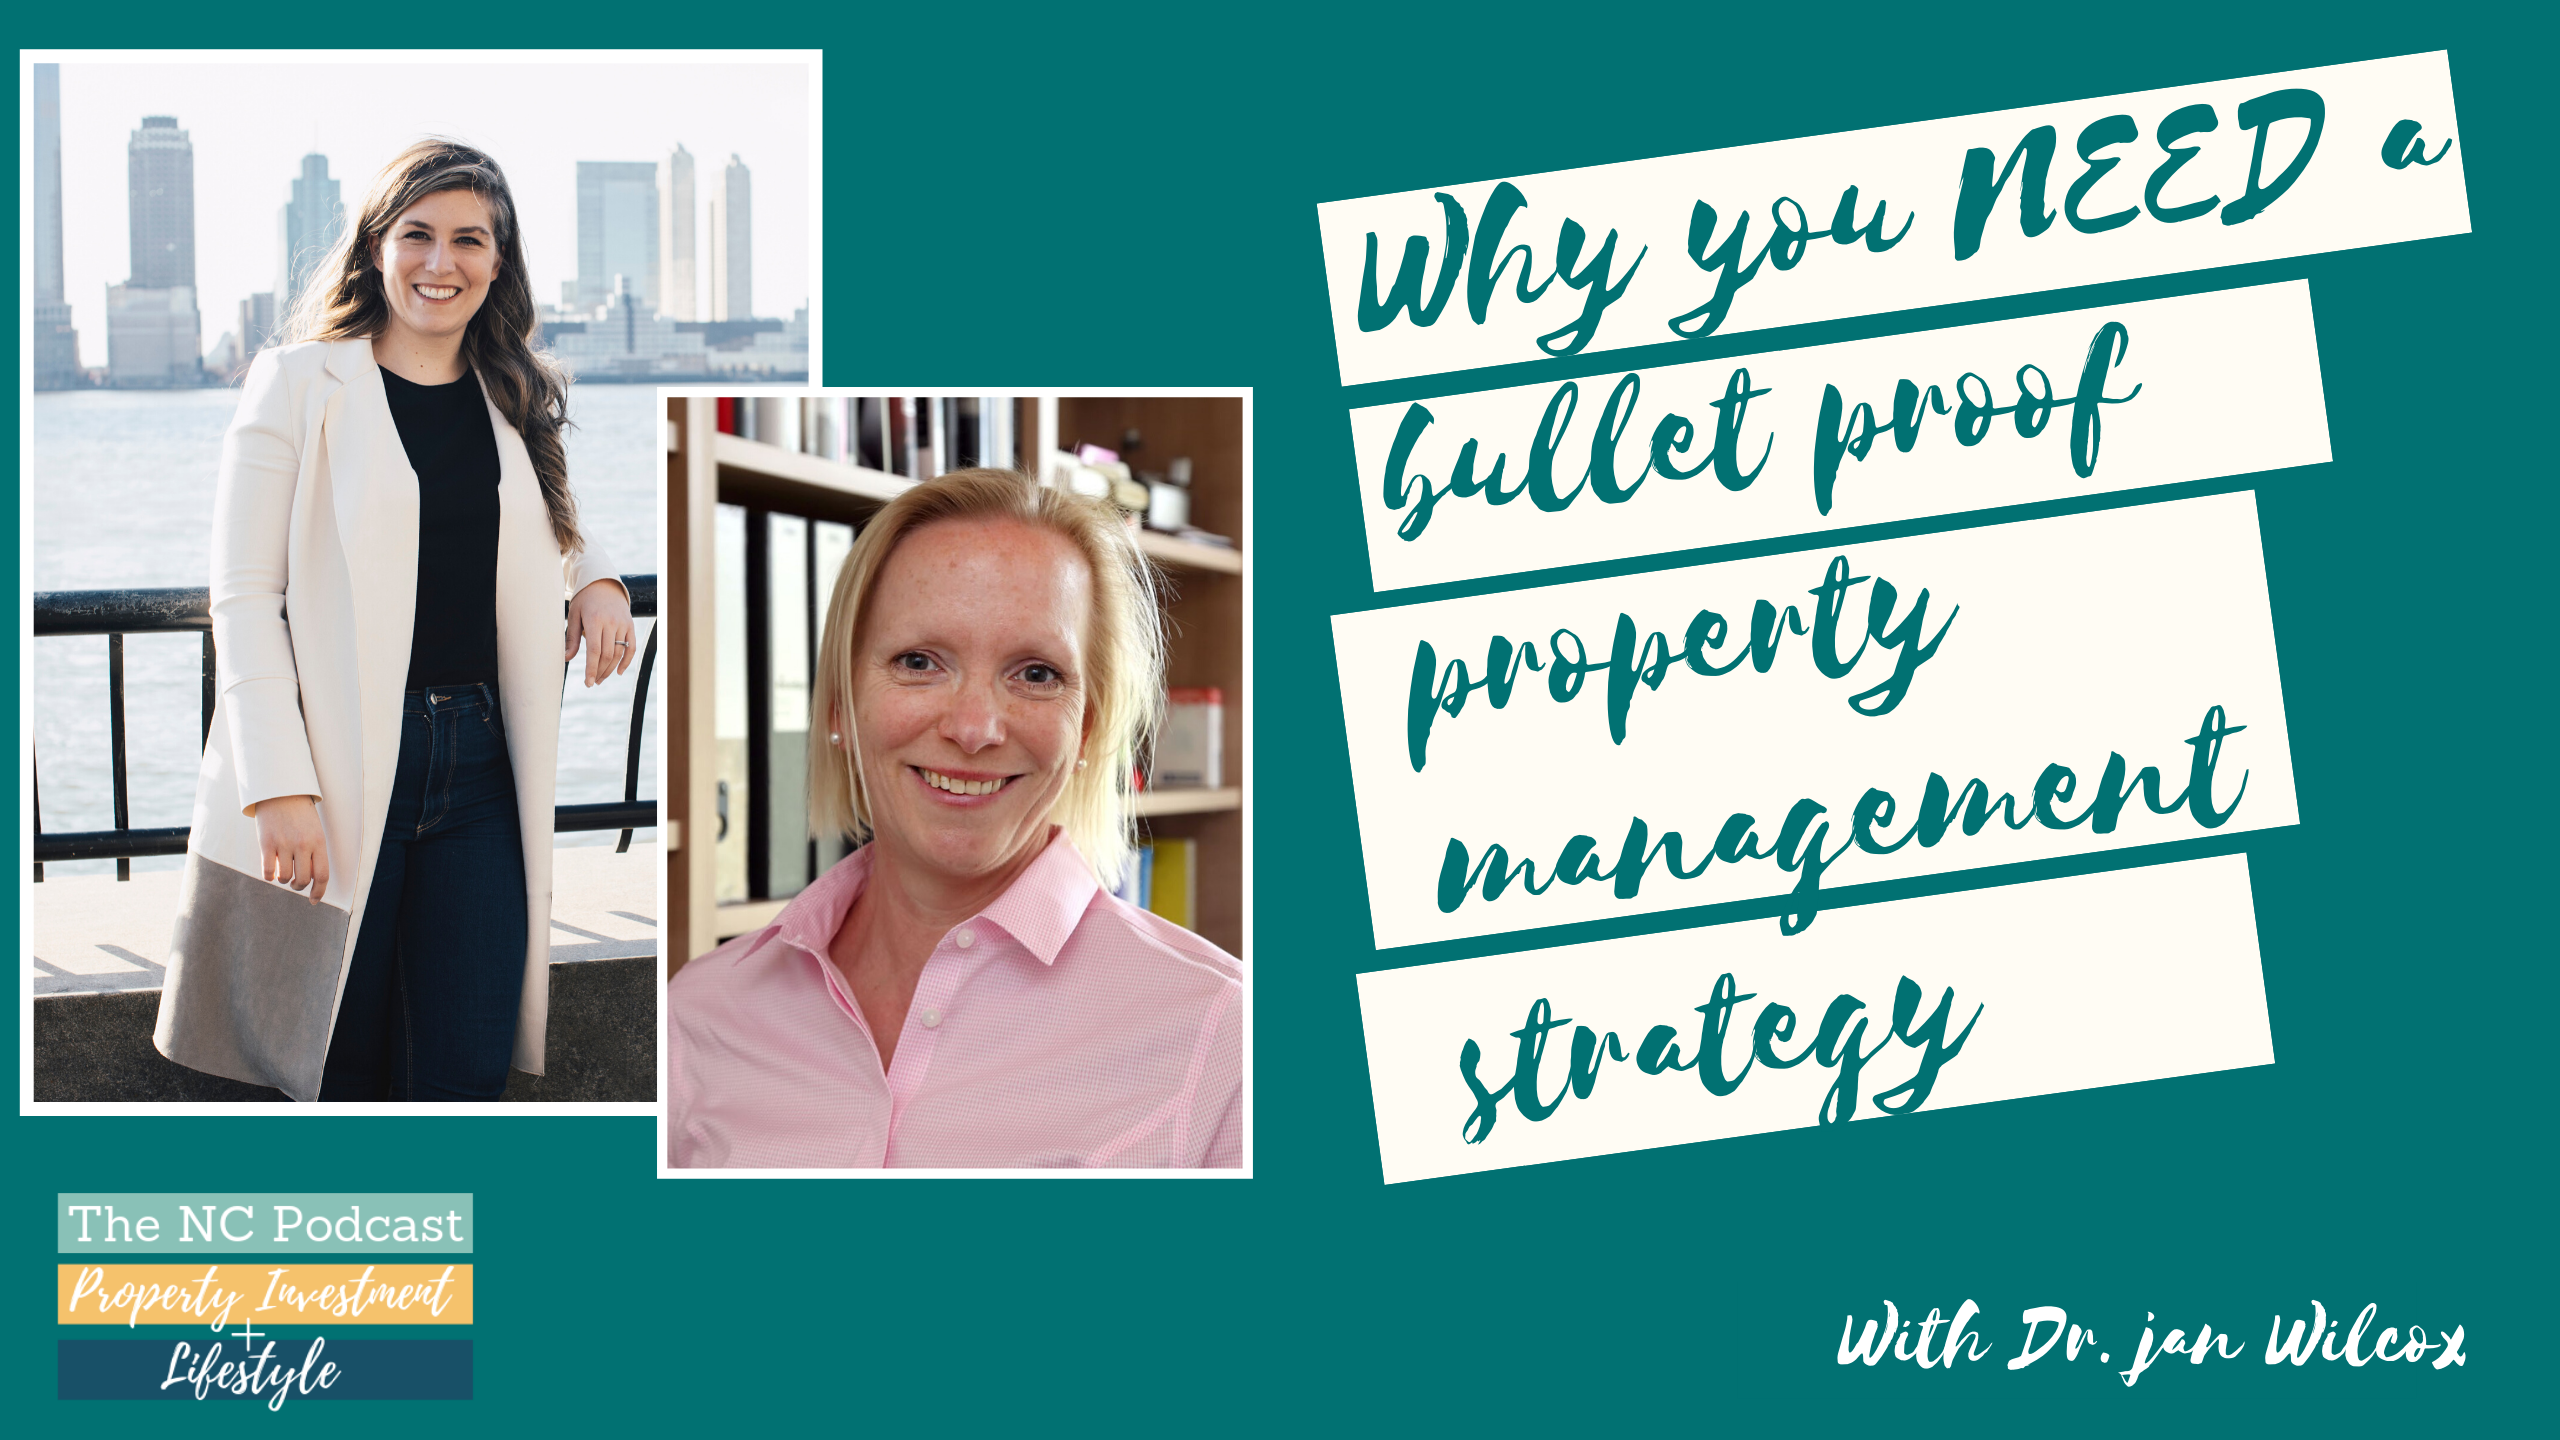 Why you NEED a bullet proof property management strategy with Dr. Jan Wilcox